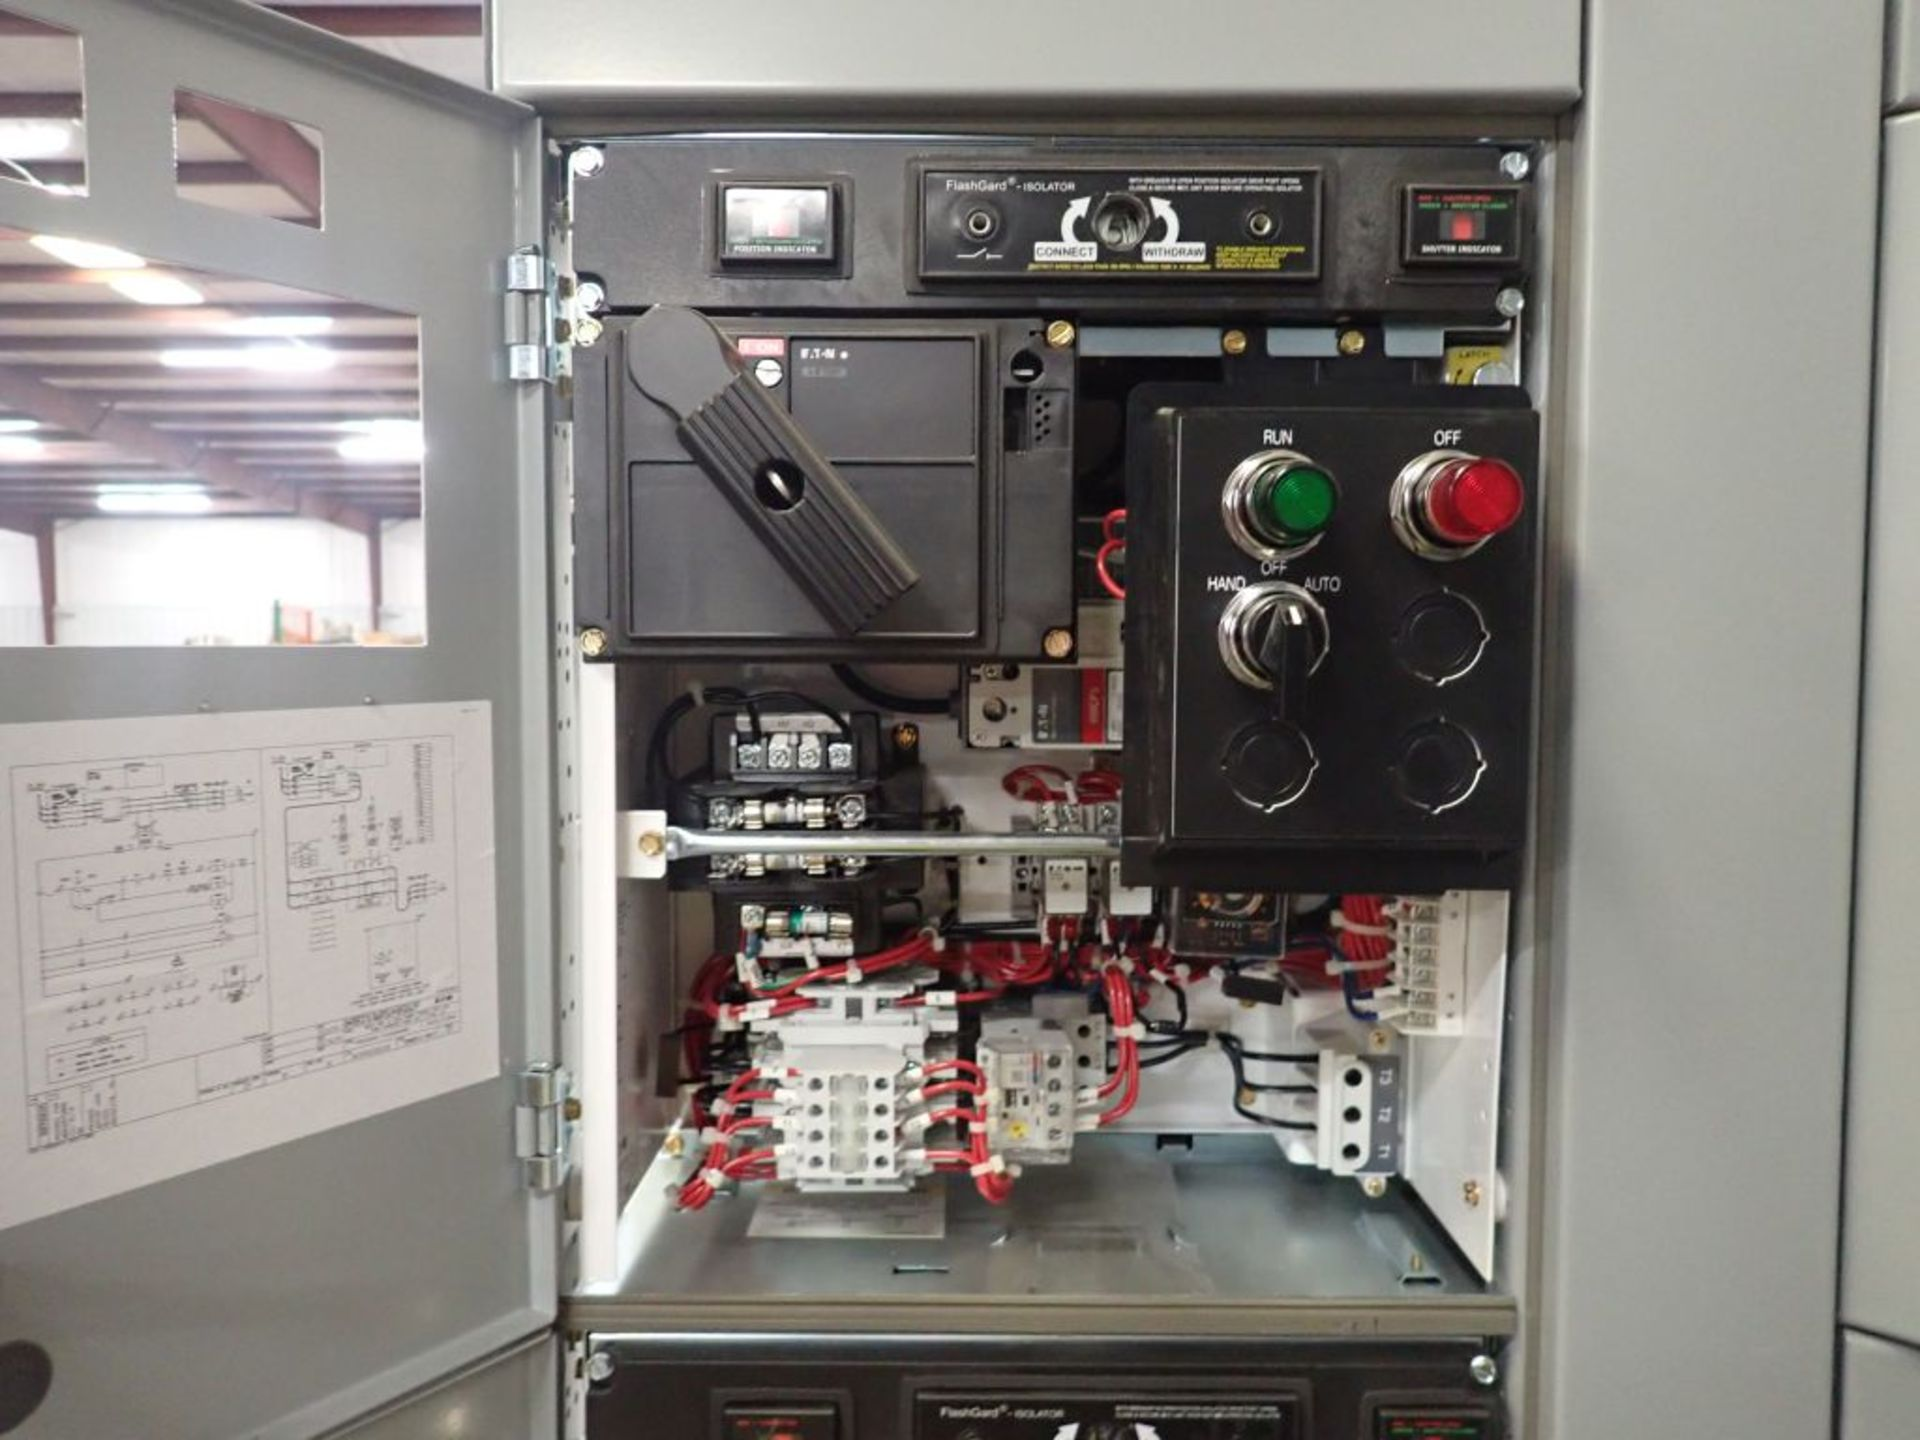 Eaton Freedom 2100 Series Motor Control Center | (2) F206-7A-10HP; (3) F206-15A-10HP; (1) FDRB-100A; - Image 44 of 87